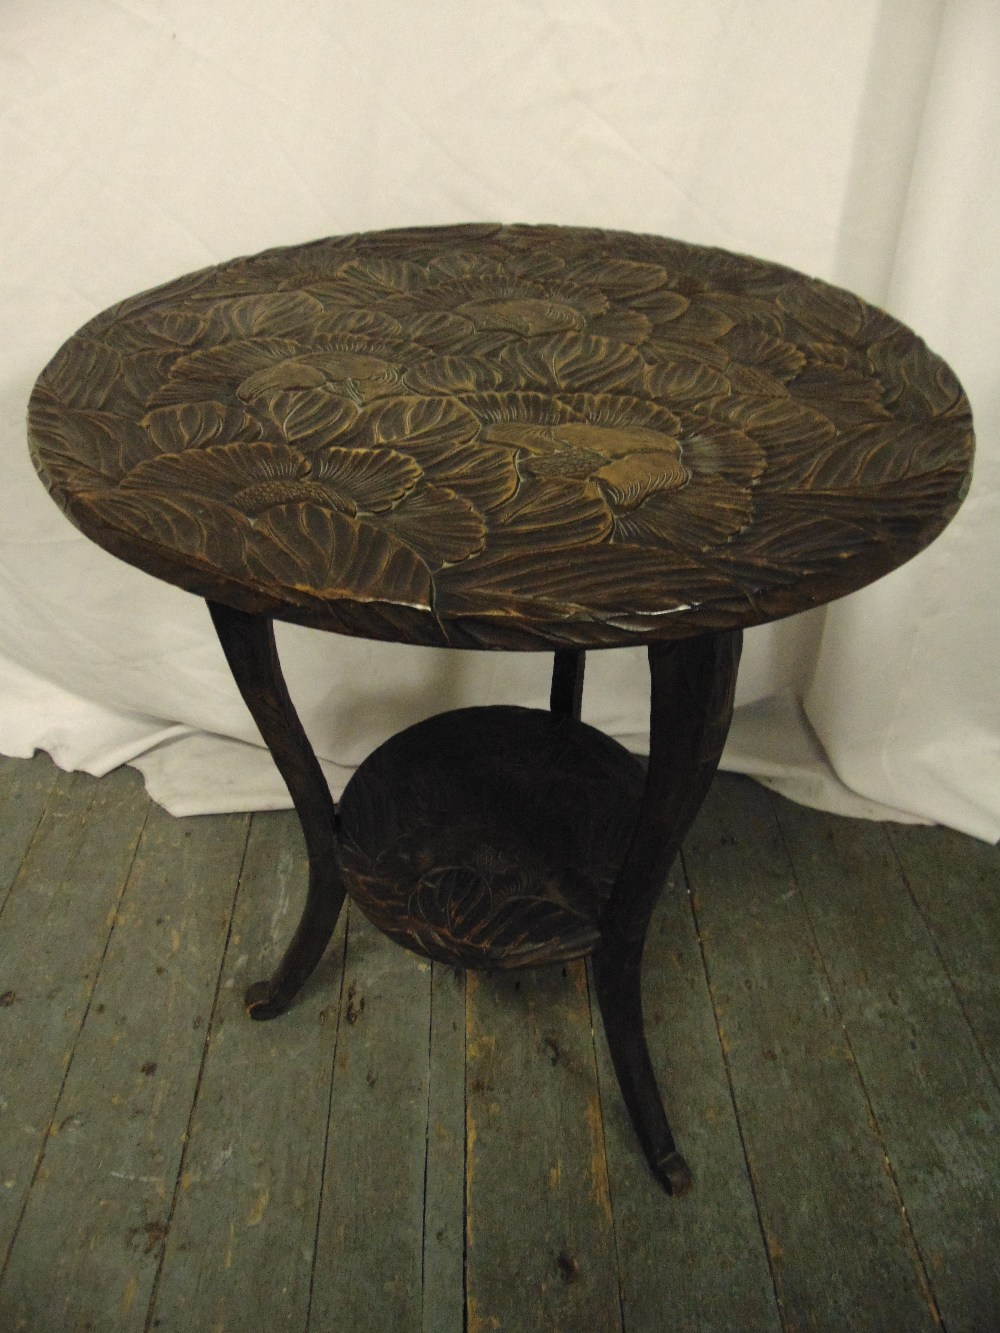 Lot 17 - An oriental circular side table on three outswept legs